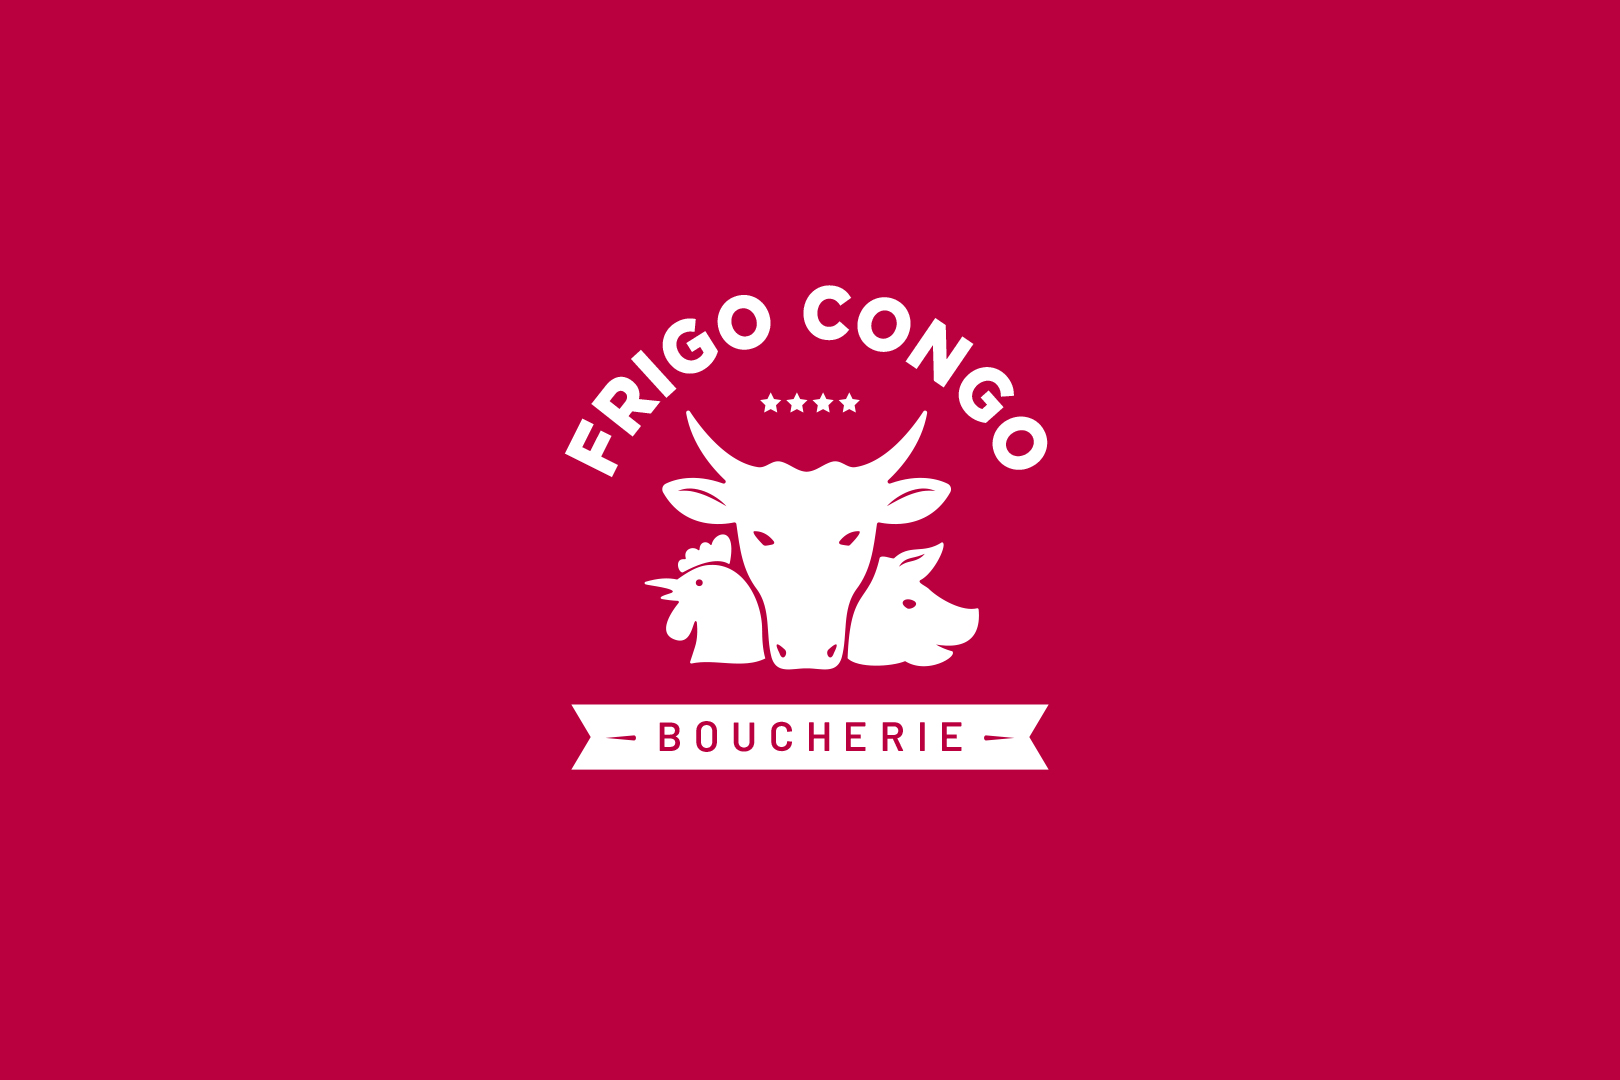 Frigo Congo is the label of our Butchery outlets - and the brand under which we are marketing quality beef, porc, chicken and fish products.